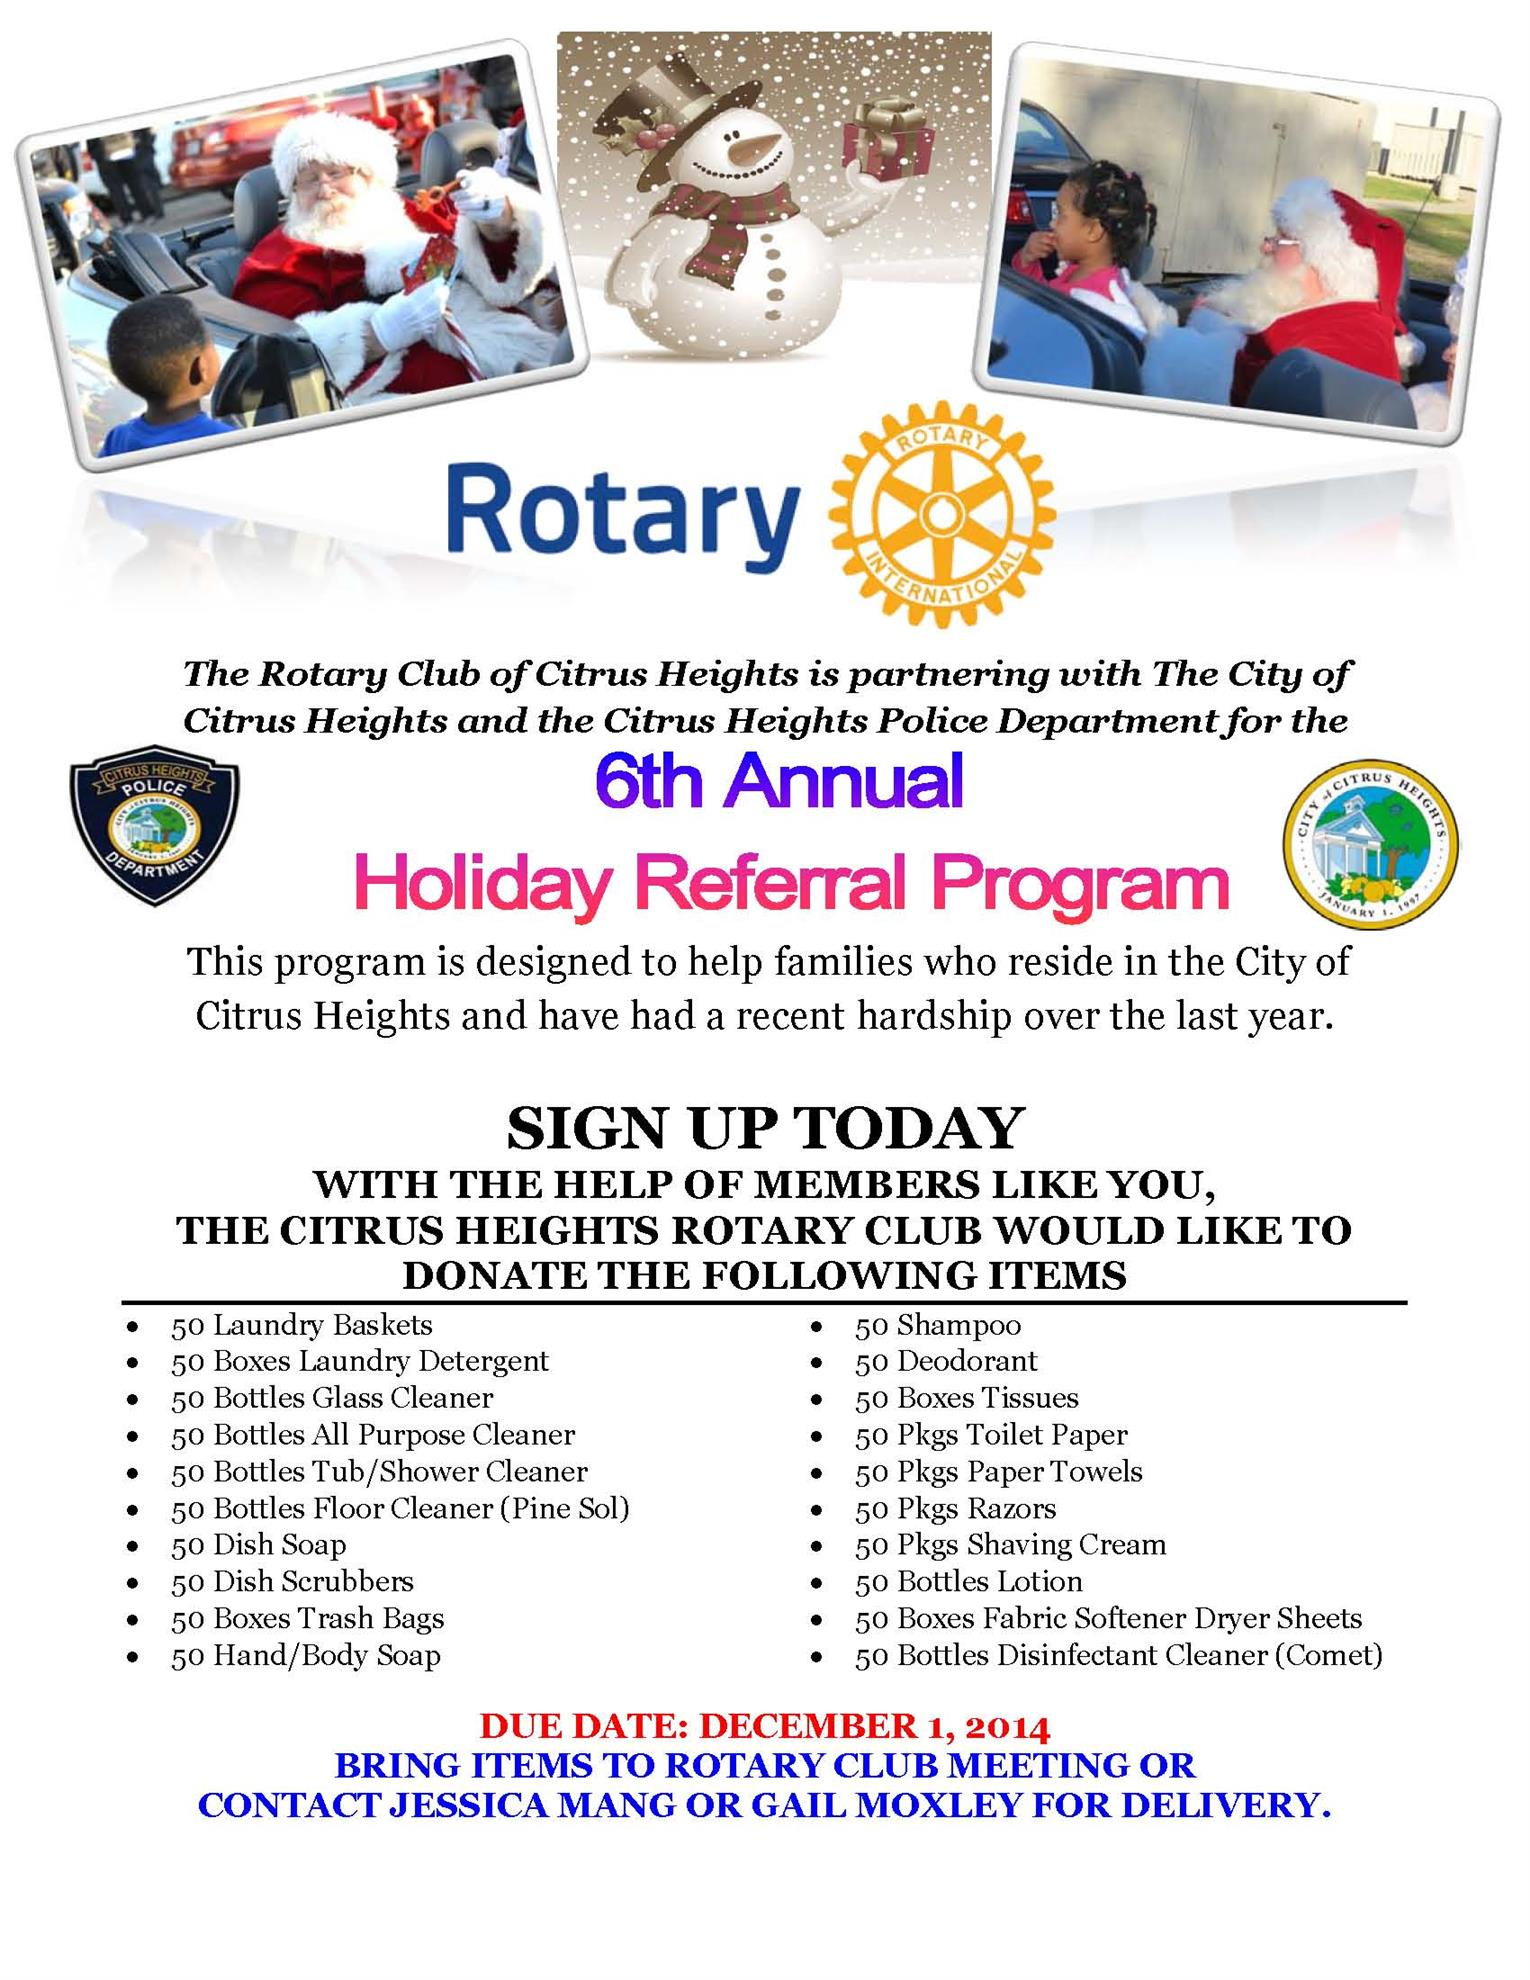 Stories Rotary Club Of Citrus Heights